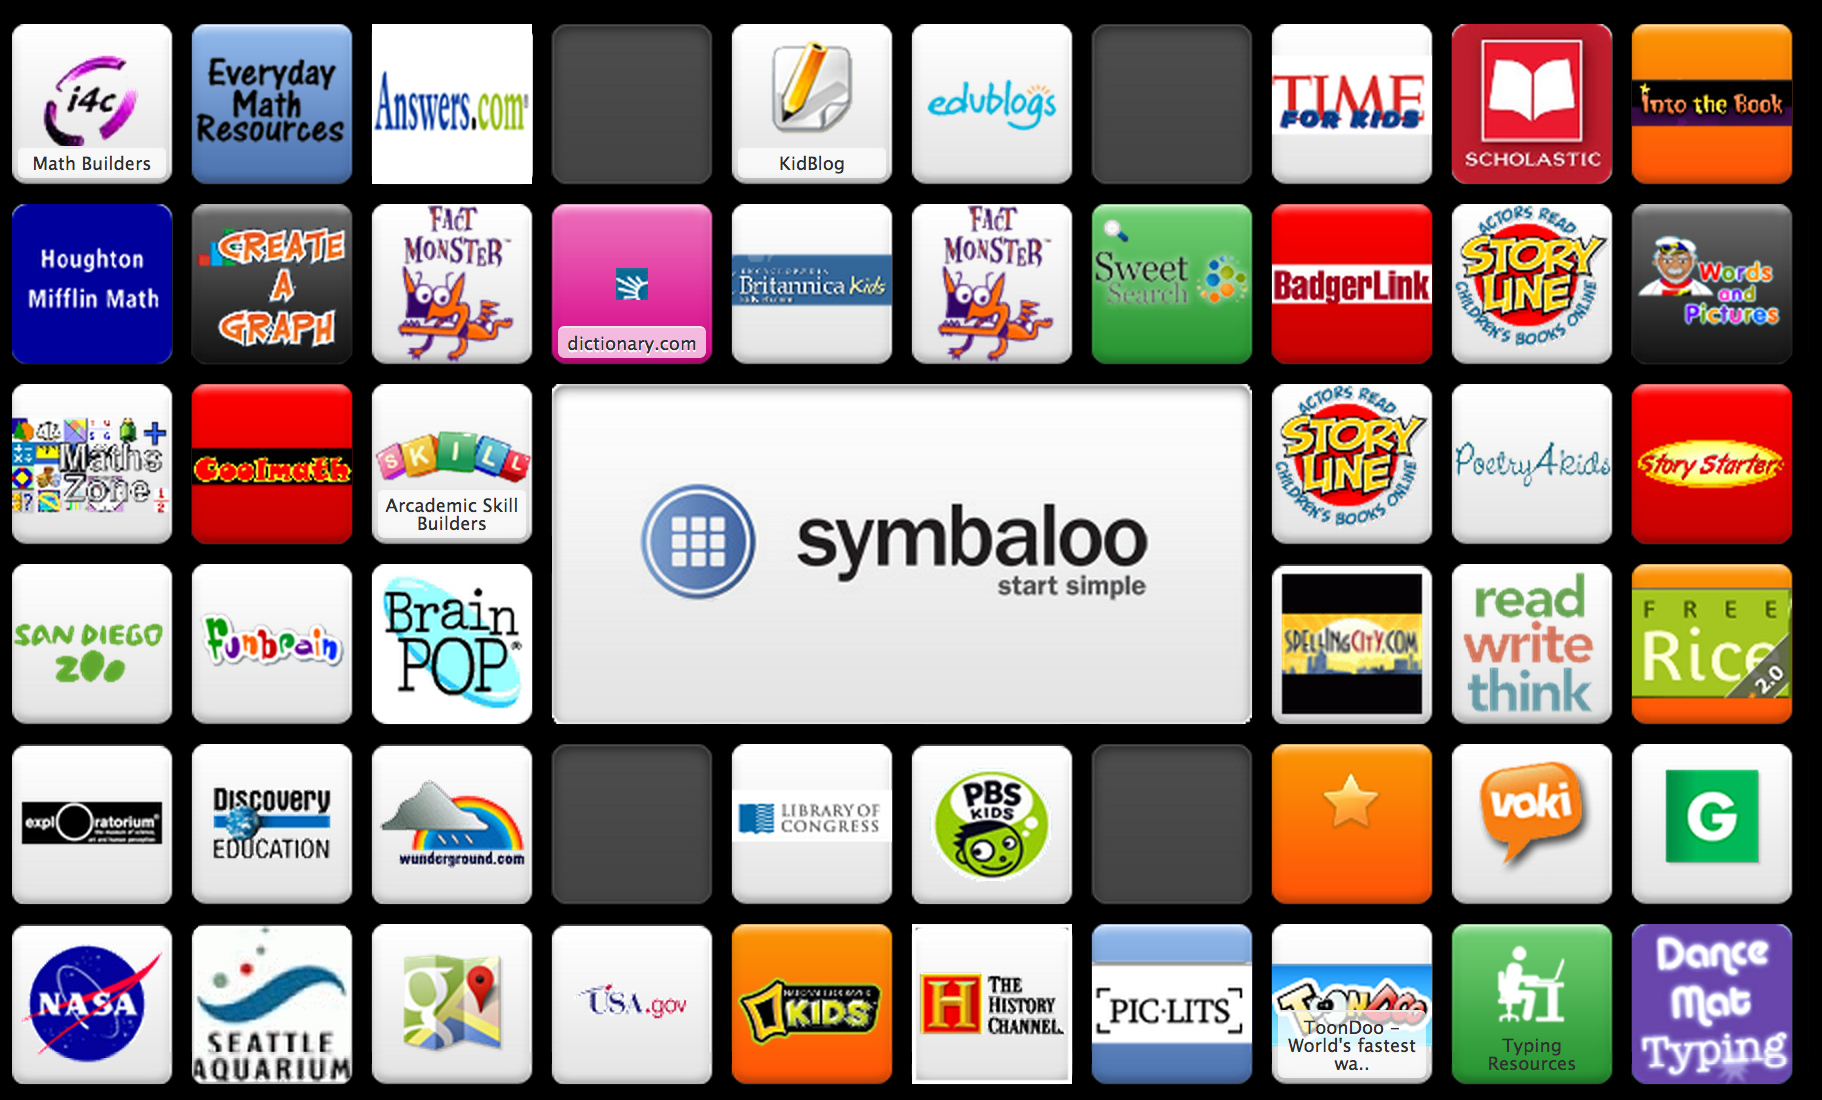 Variety Of Sites And Apps For Fourth Graders To Use At School And At